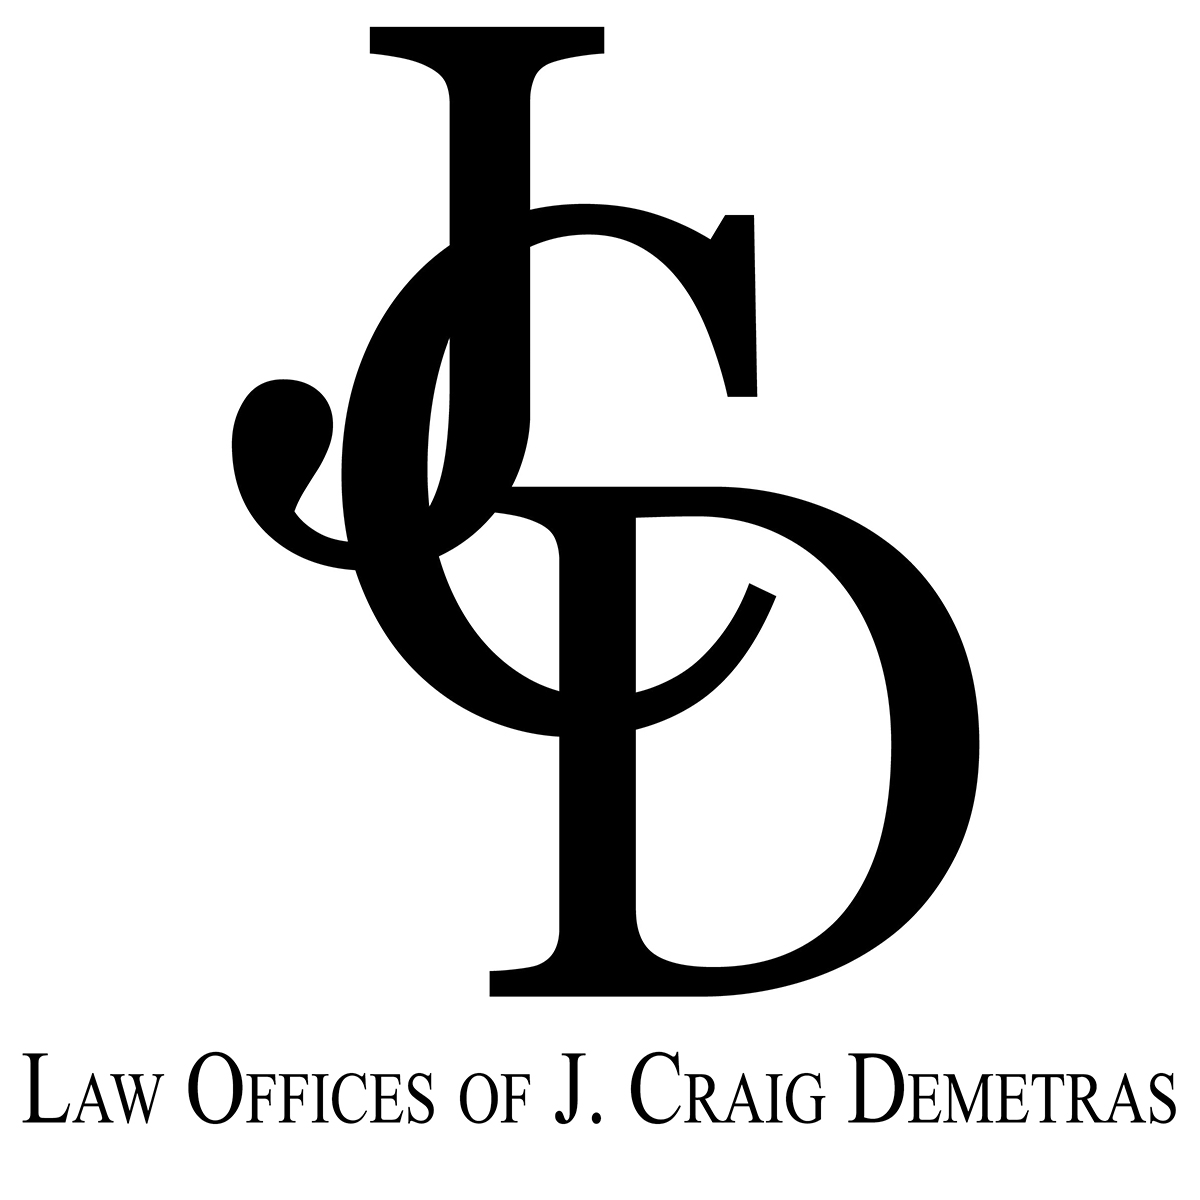 law_office_of_jc_demetars.jpg